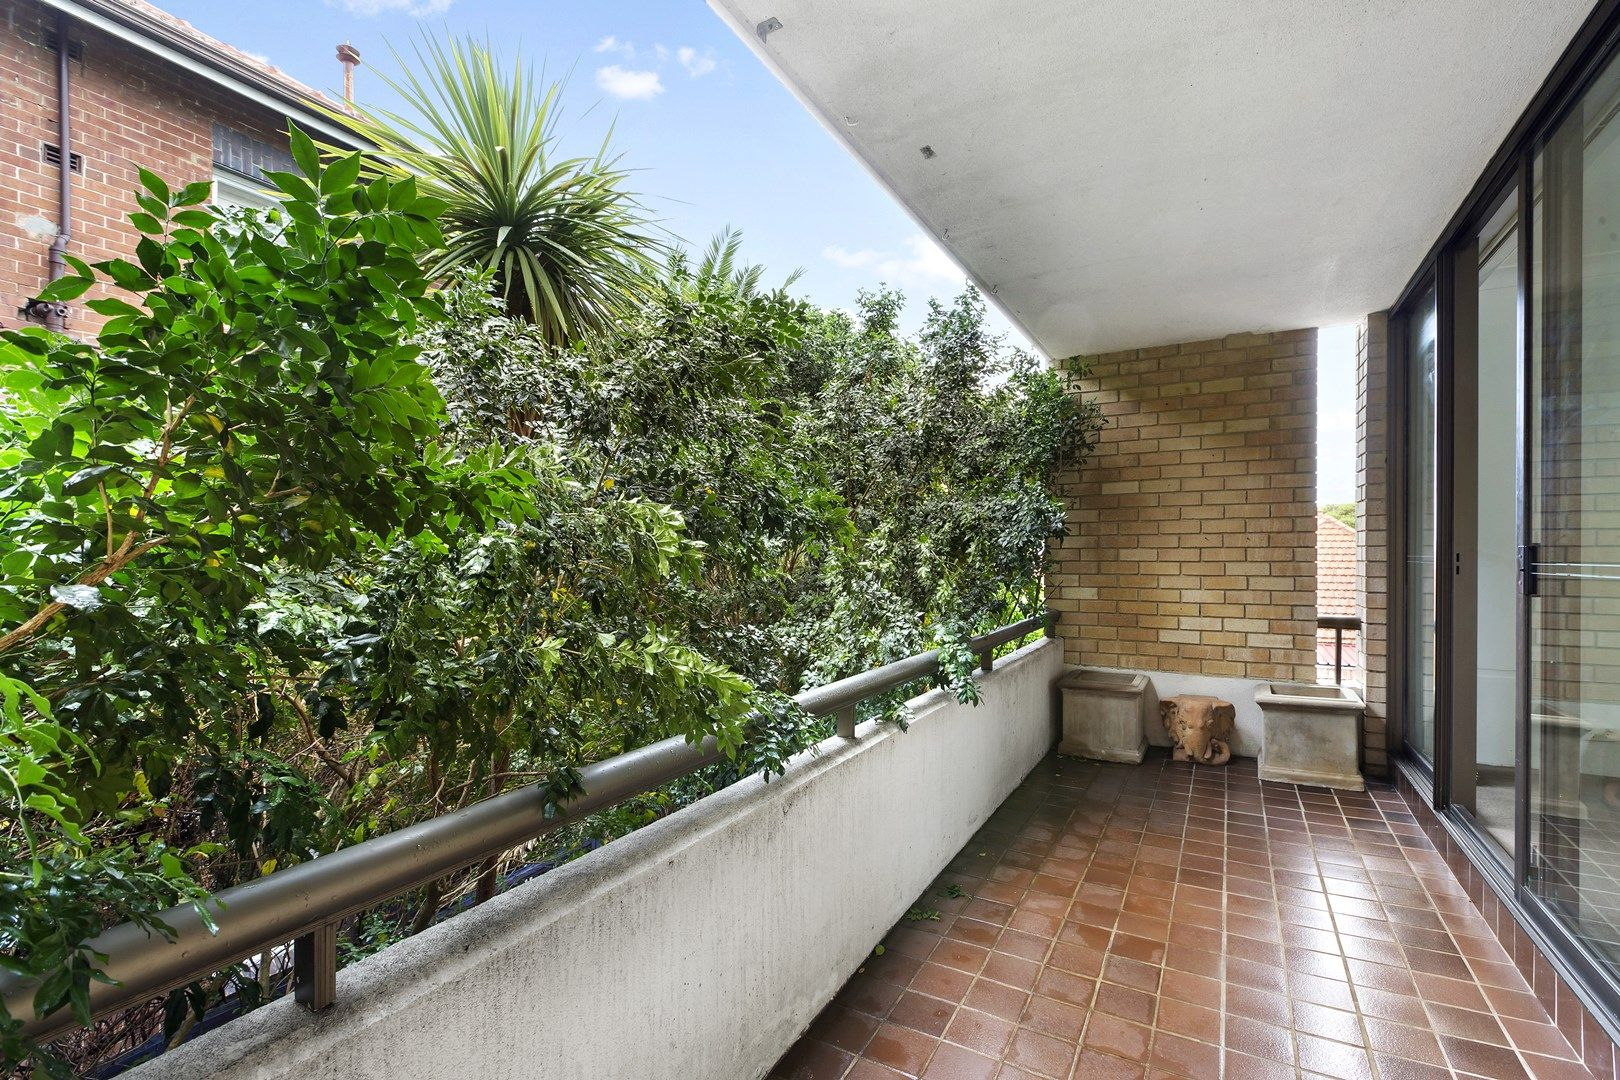 10/57 Yeo Street, Neutral Bay NSW 2089, Image 1